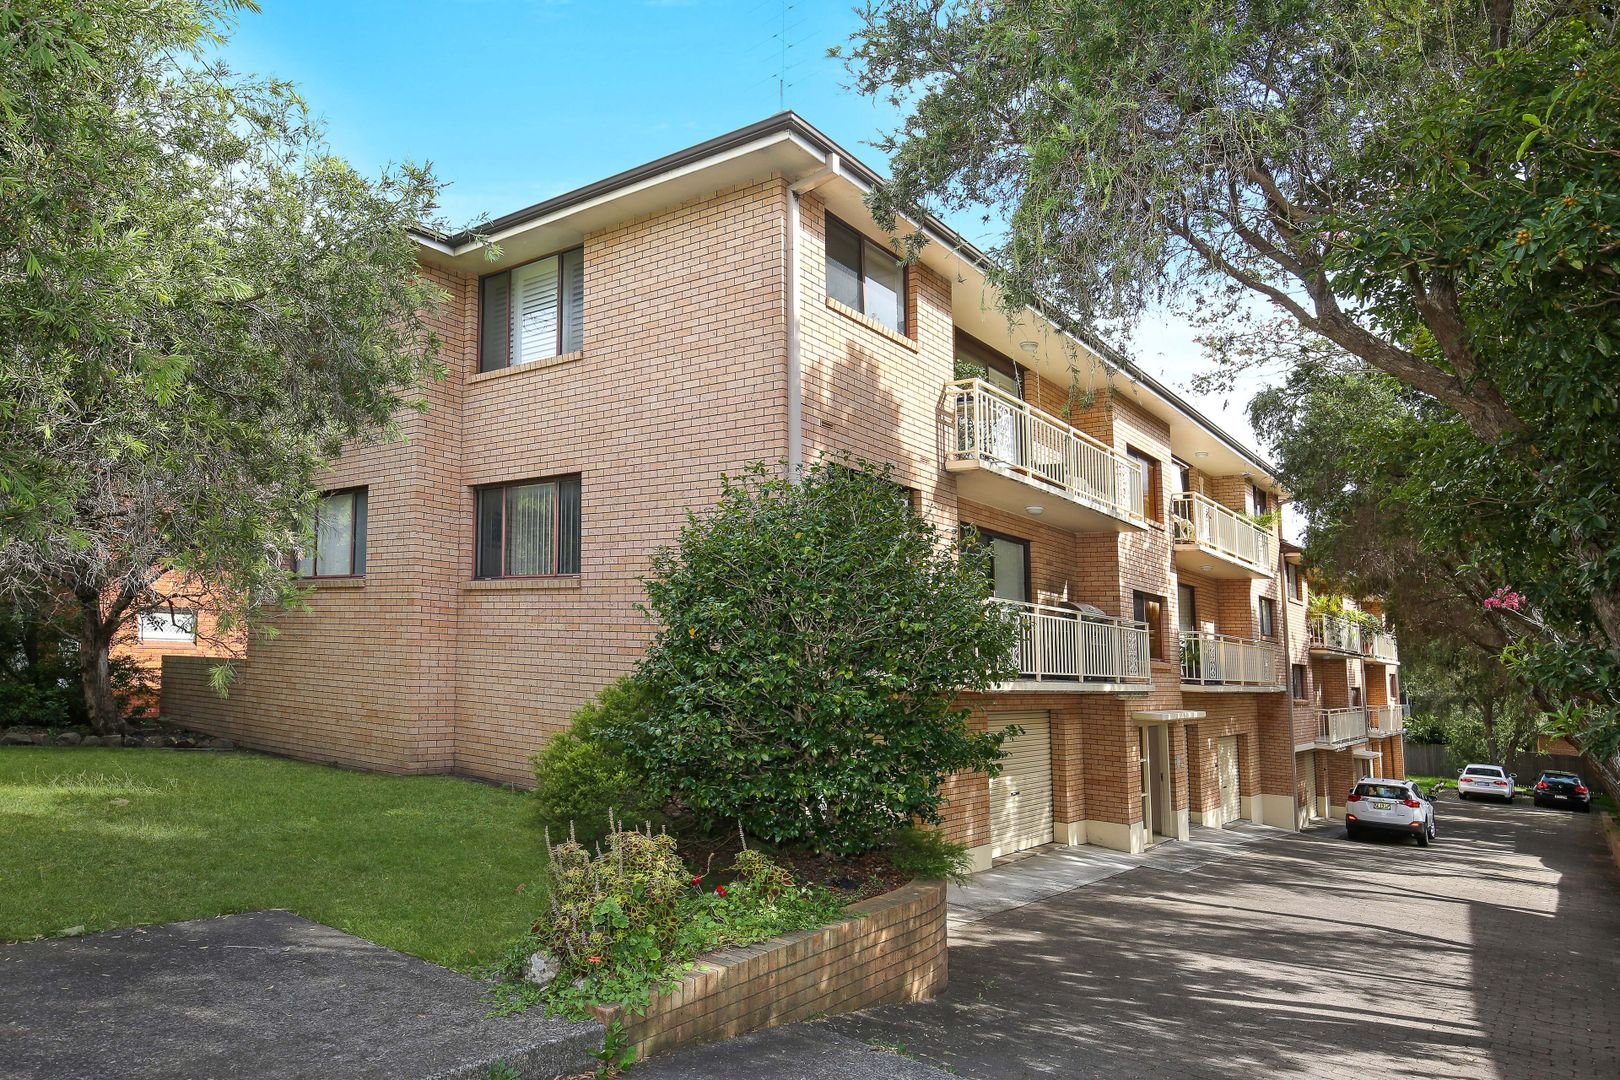 3/18 Smith Street, Wollongong NSW 2500, Image 0